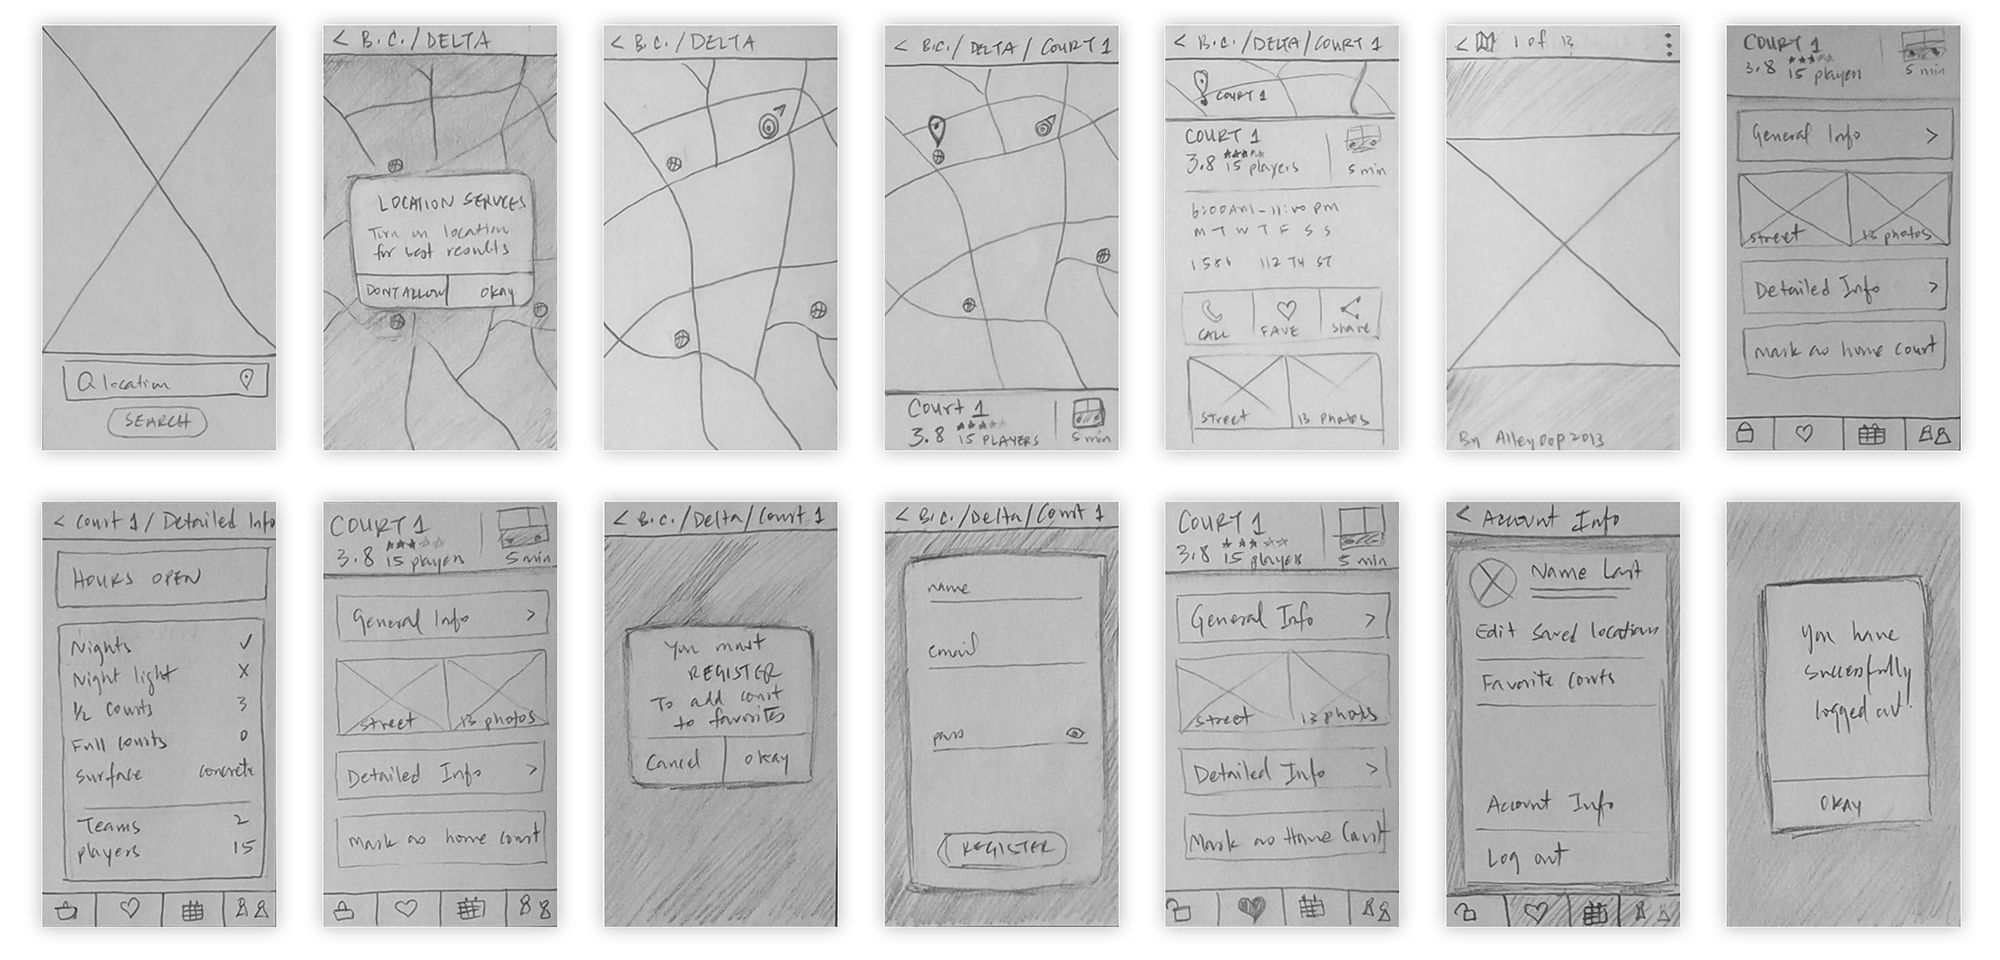 Updated Low-Fidelity, paper wireframes showing improvements from user-testing.